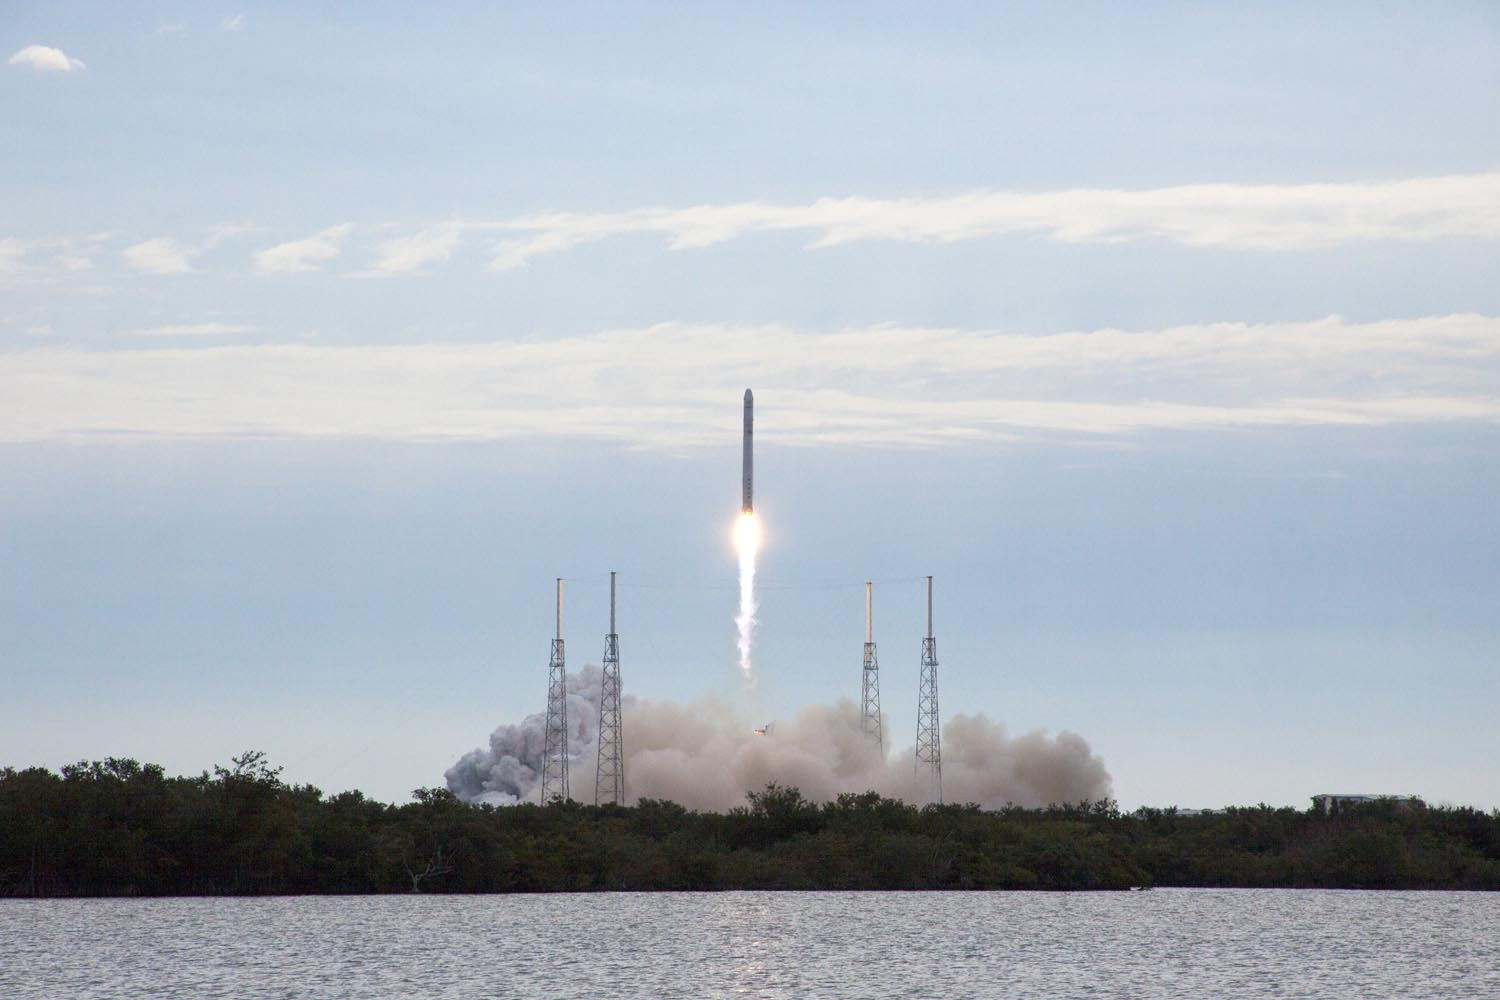 dragon spacex texas launch - photo #26